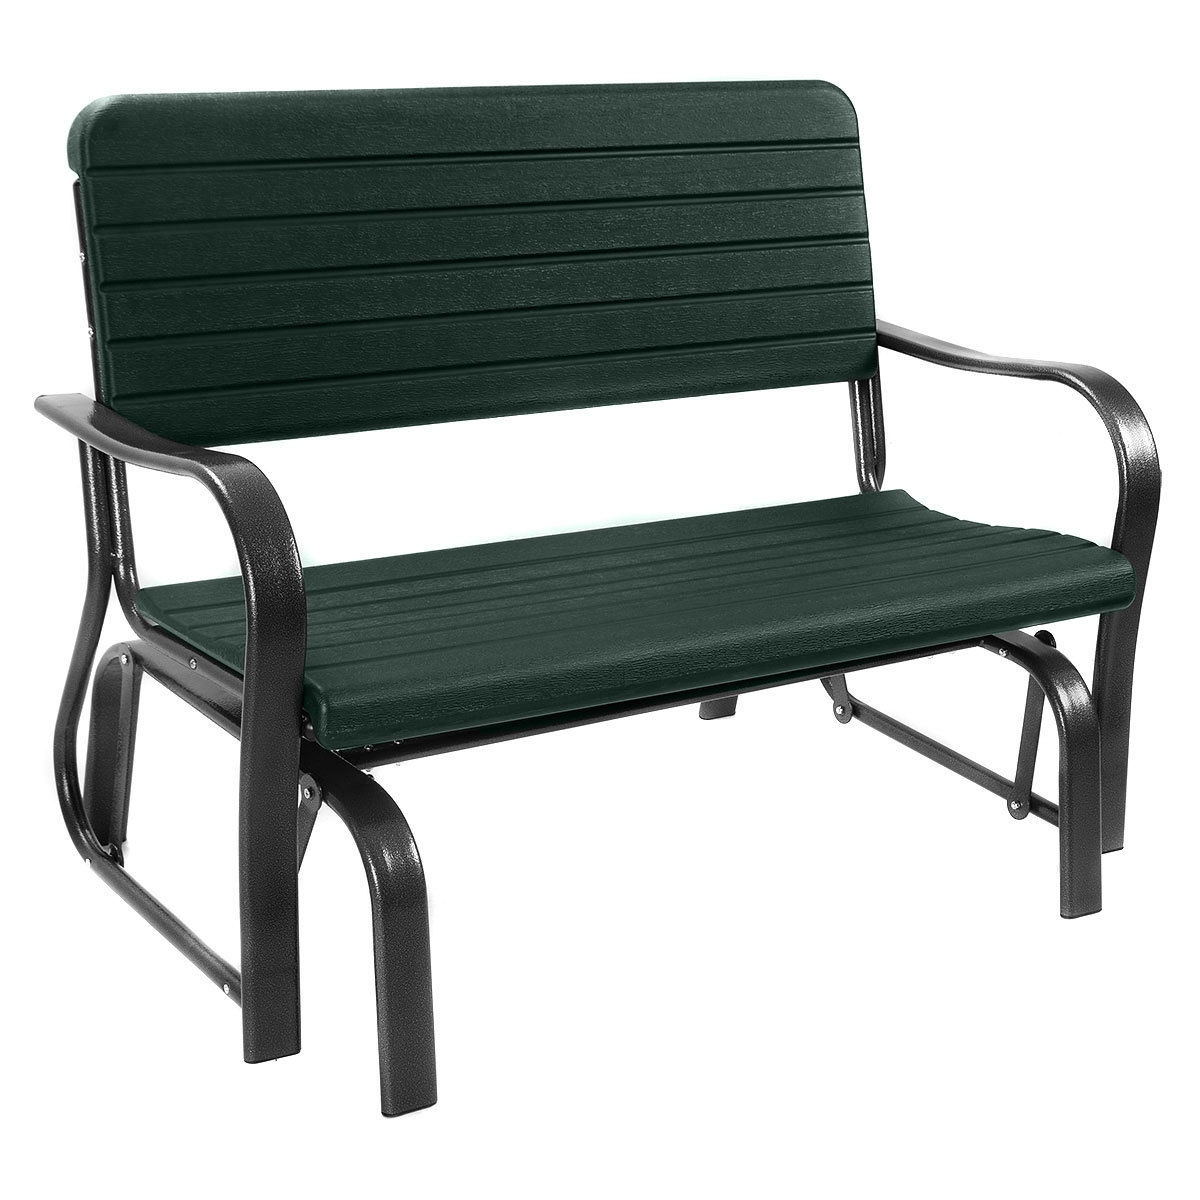 Best And Newest Rocking Love Seats Glider Swing Benches With Sturdy Frame Pertaining To Outdoor Patio Steel Swing Bench Loveseat (View 24 of 30)